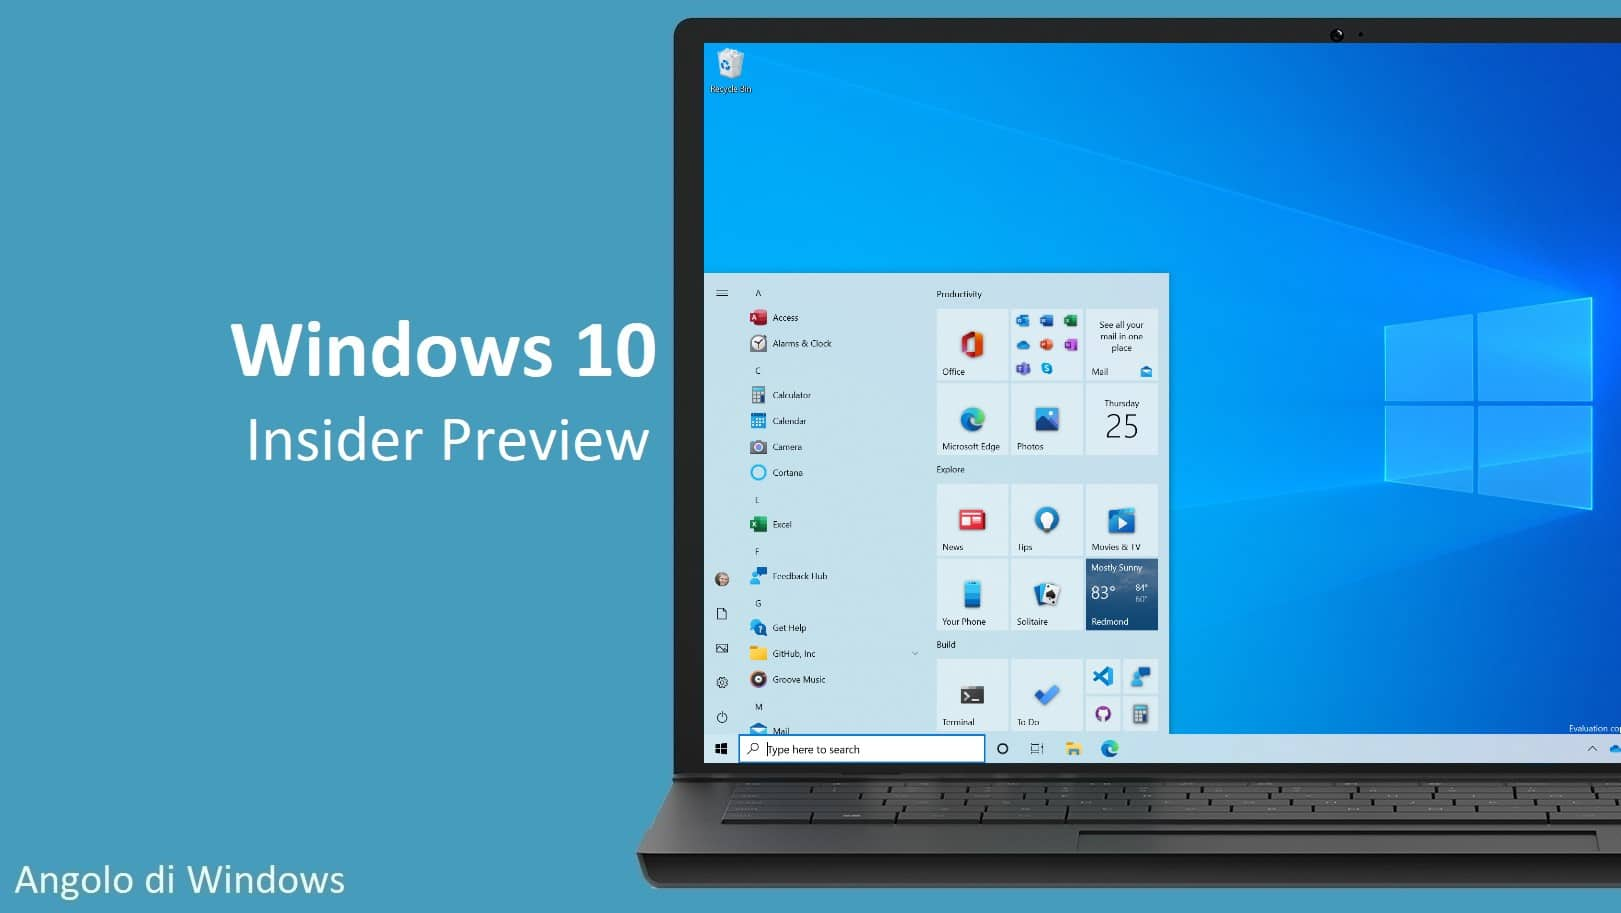 Le ultime novità di Windows 10 Insider Preview build 20175